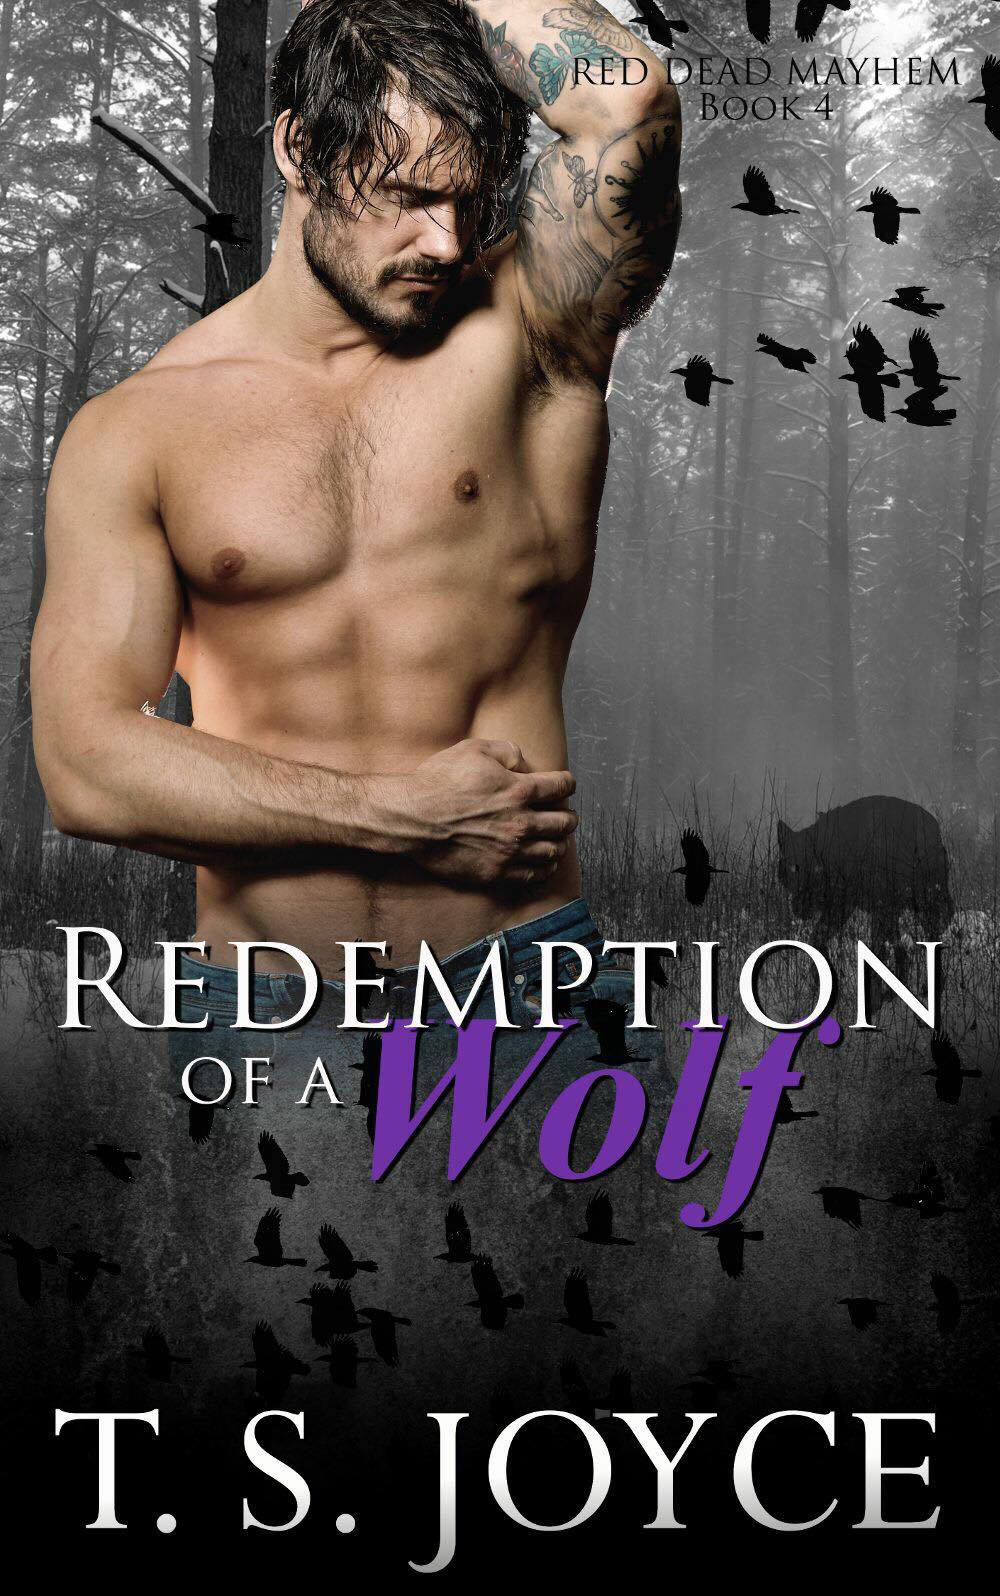 REDEMPTION OF A WOLF